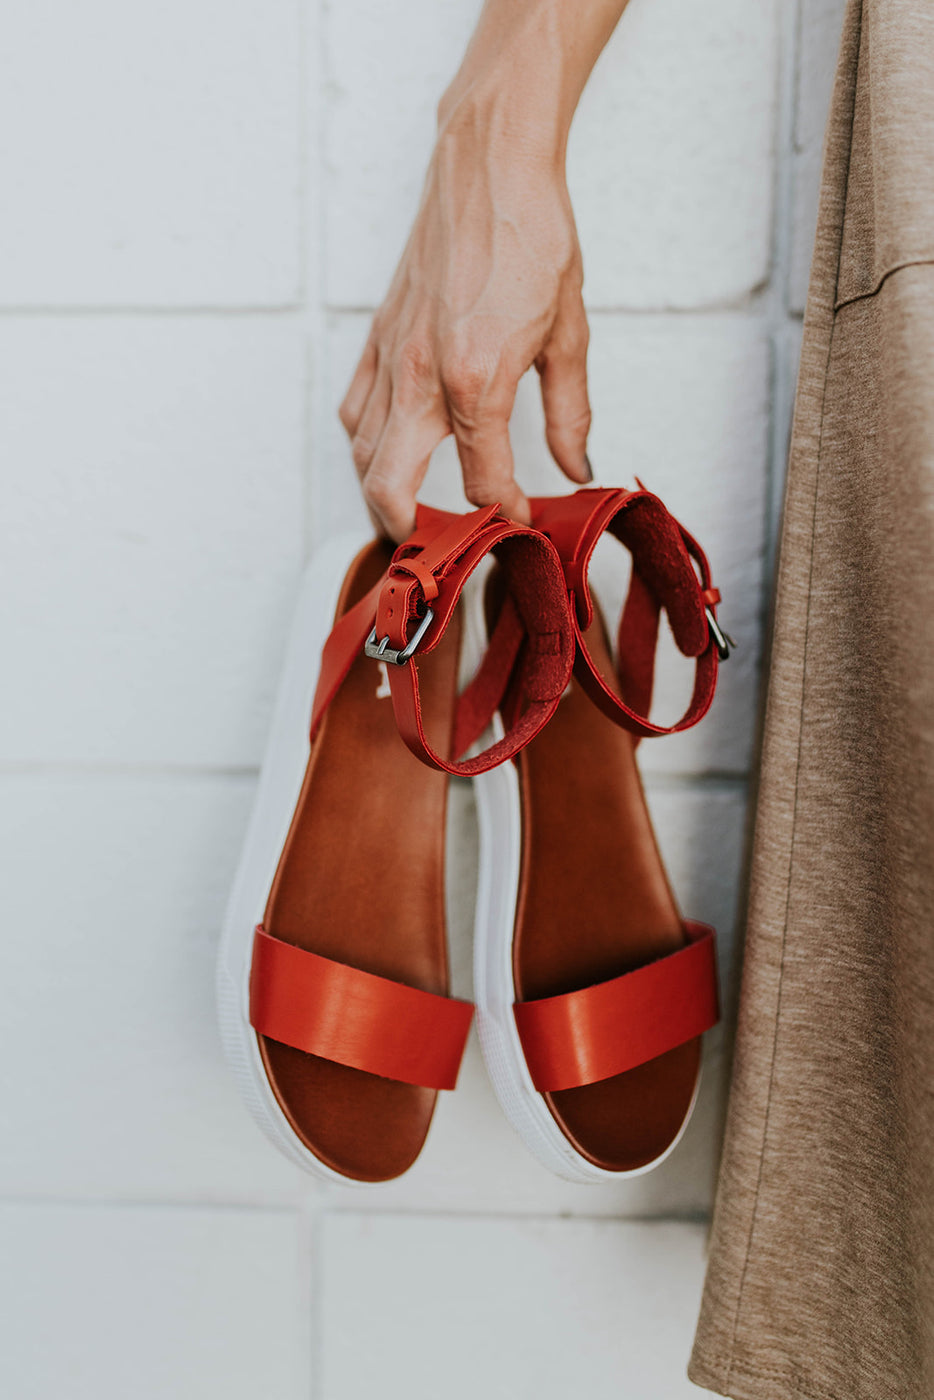 Warm Weather Shoe Inspiration For Women | ROOLEE